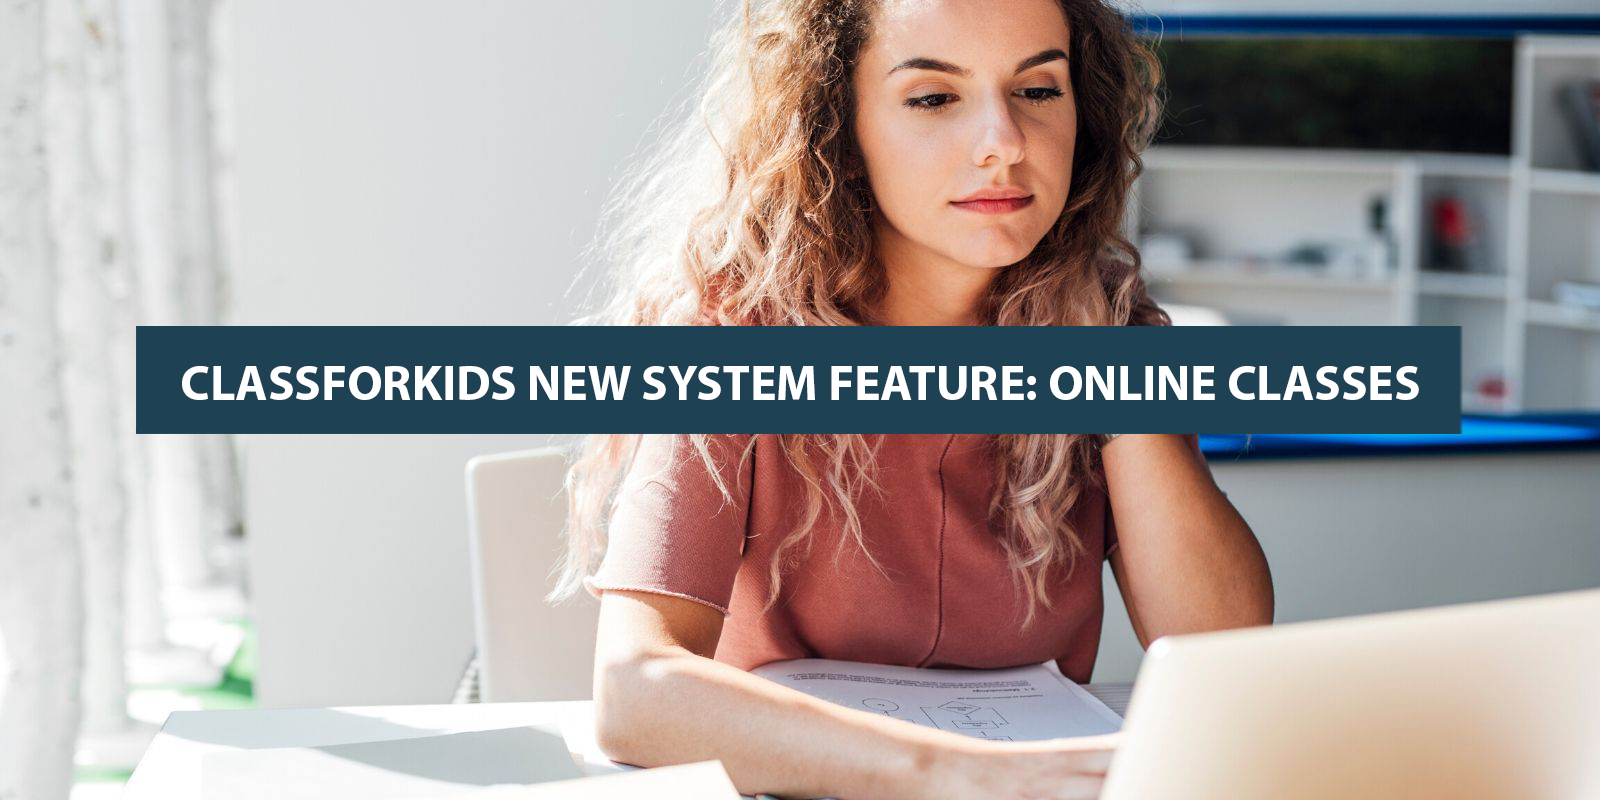 CLASSFORKIDS-NEW-SYSTEM0-FEATURE- ONLINE-CLASSES